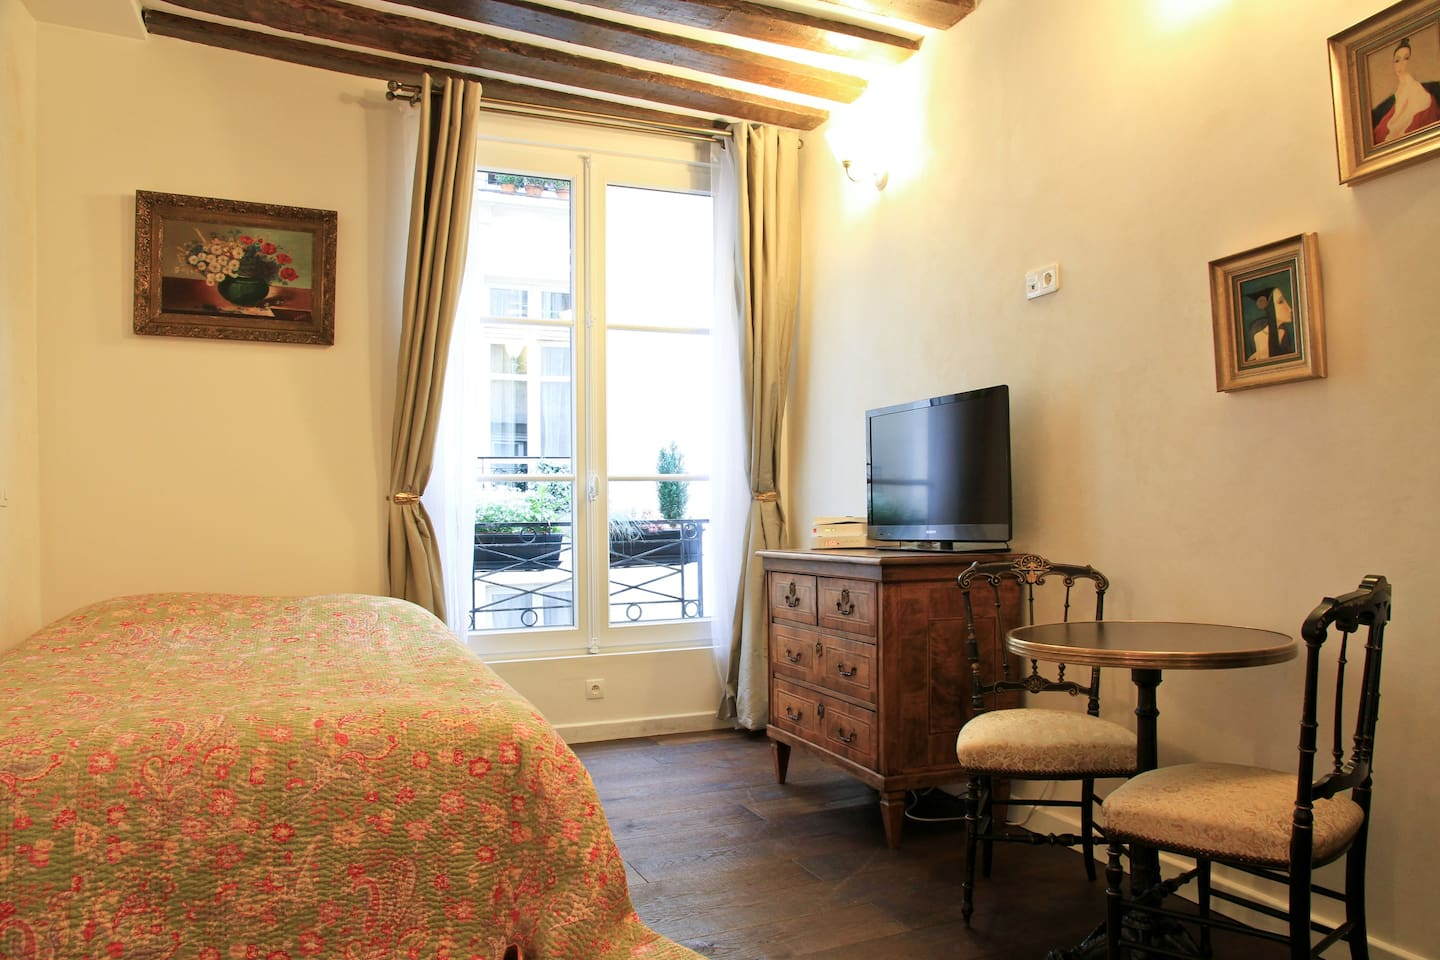 The main room is decorated and furnished with French antiques. You can enjoy the ambience on the street when the window is open and will still not hear a sound when it is closed.